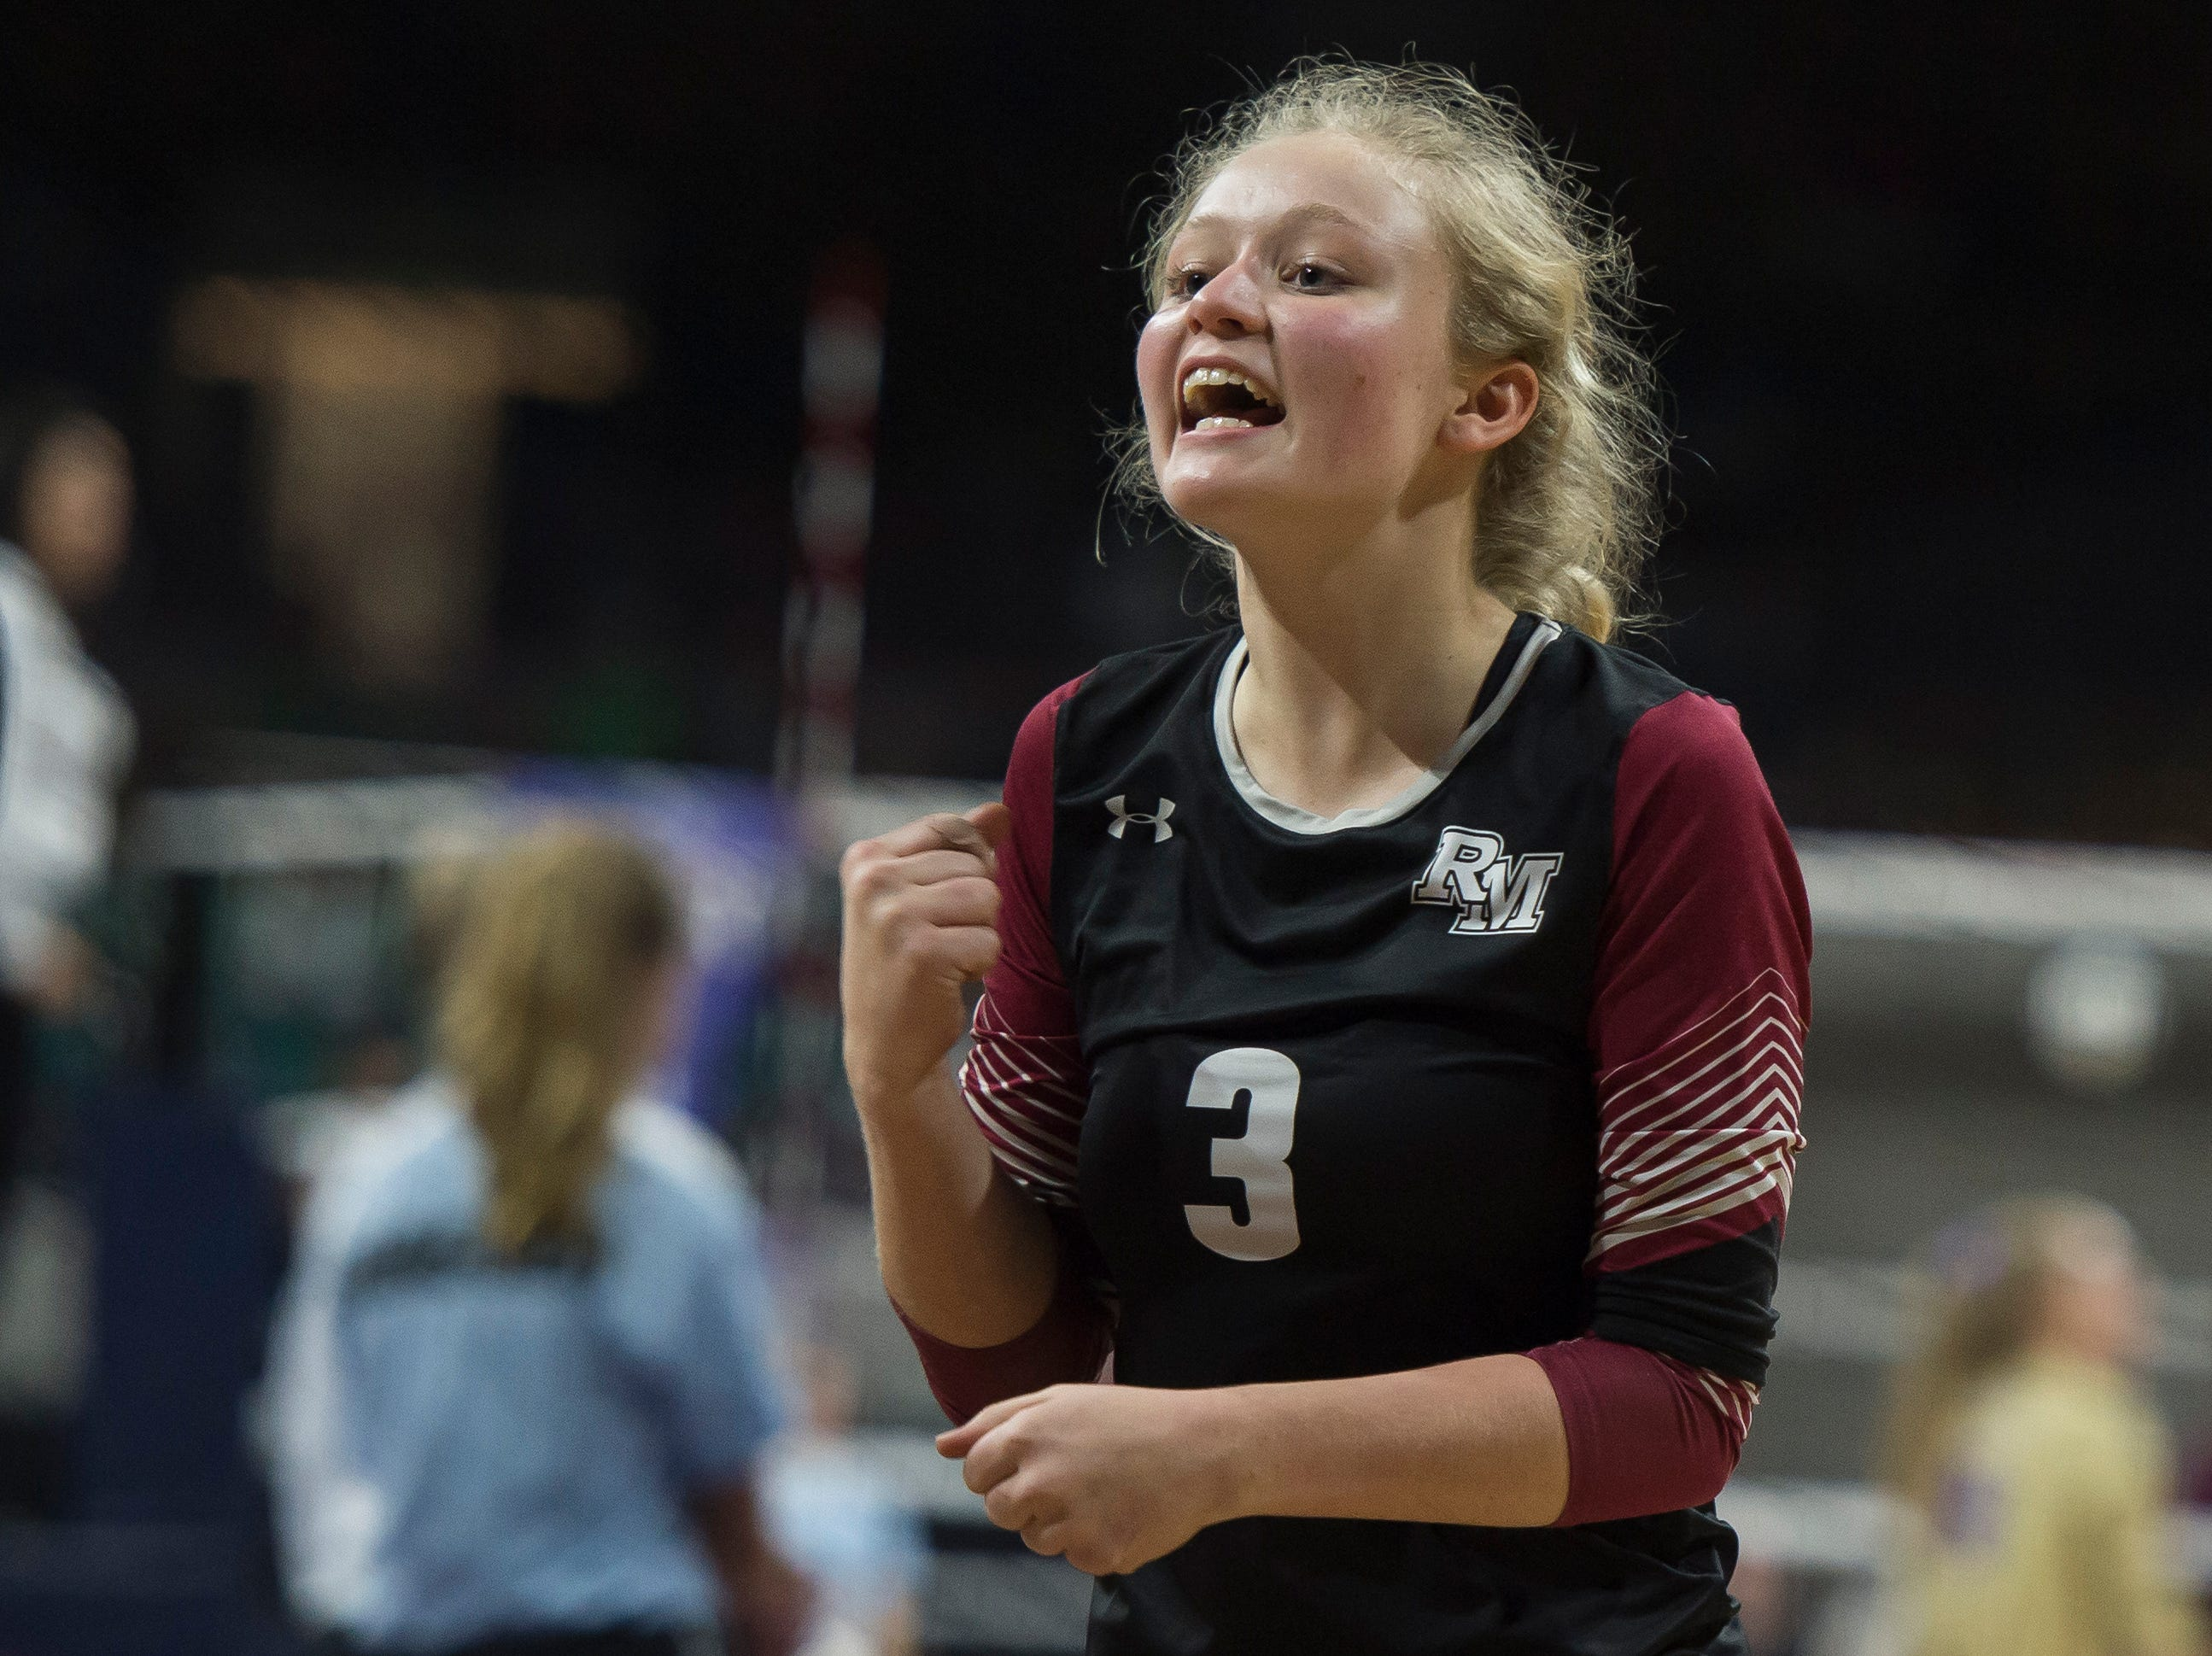 Rocky Mountain High School junior Elly Couch (3) talks to teammates during a first round state game against Eaglecrest on Thursday, Nov. 8, 2018, at the Denver Coliseum in Denver, Colo.